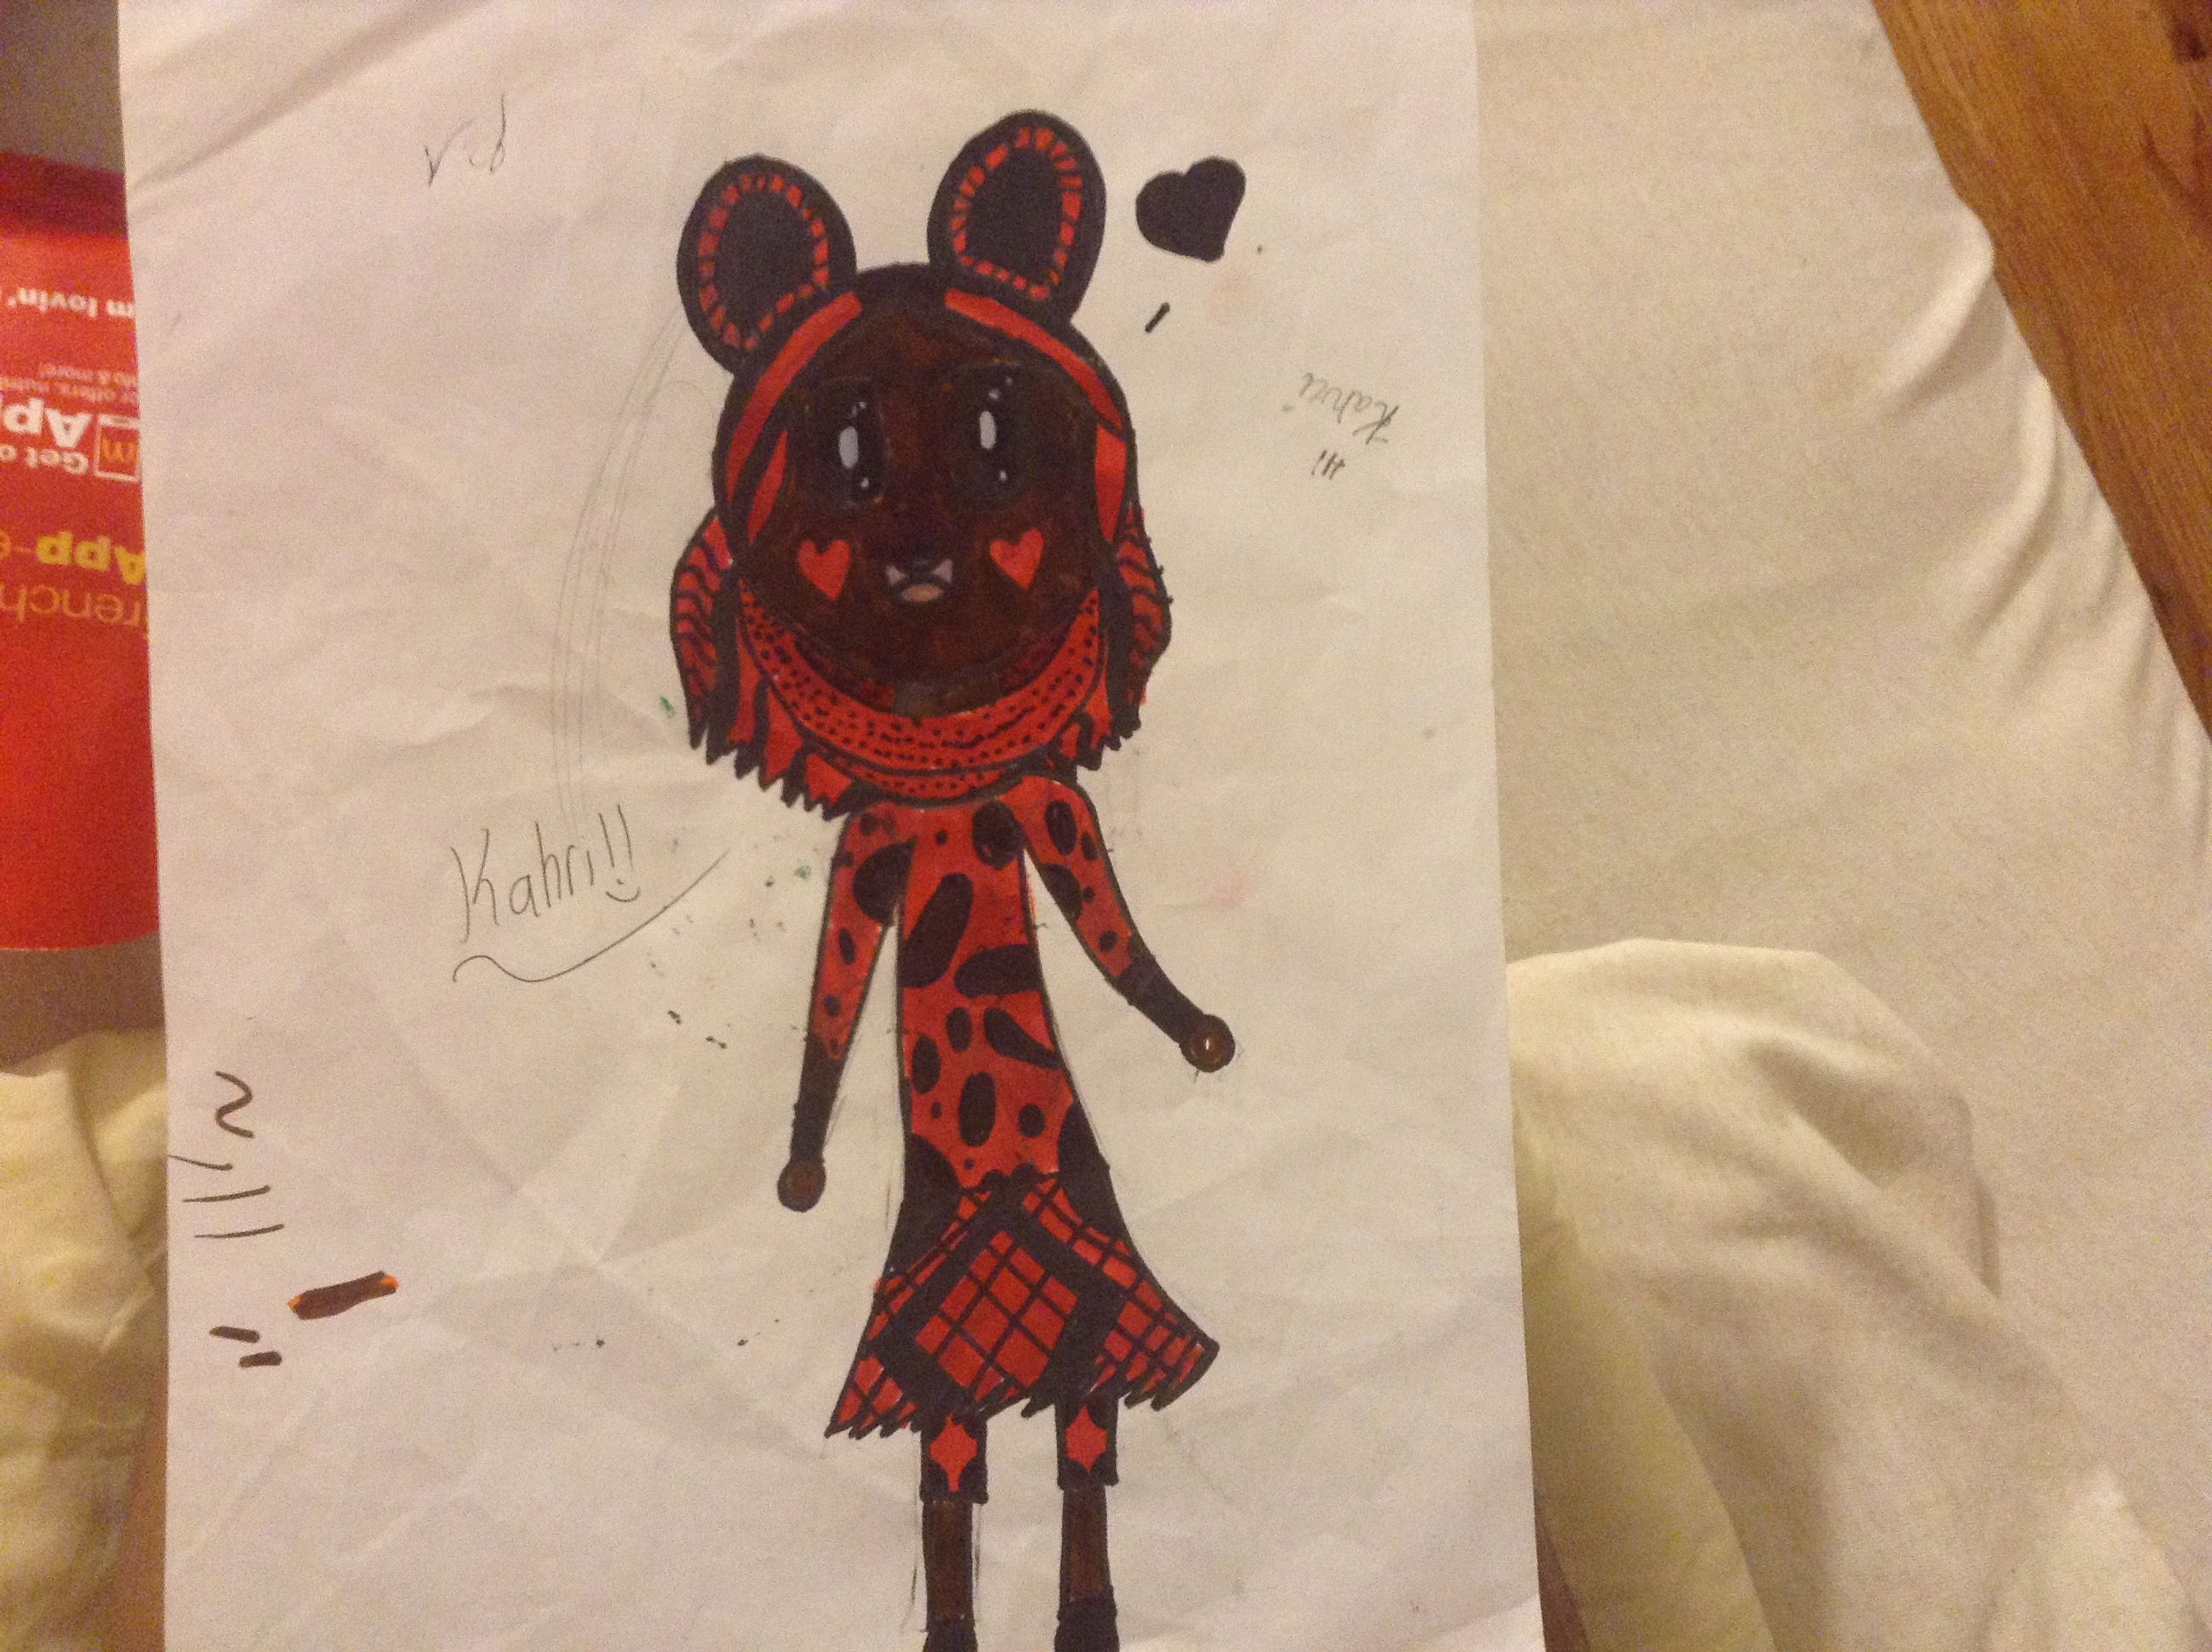 I was challenged by my friend to draw something hing only using red and black here's the outcome after I colored it:3